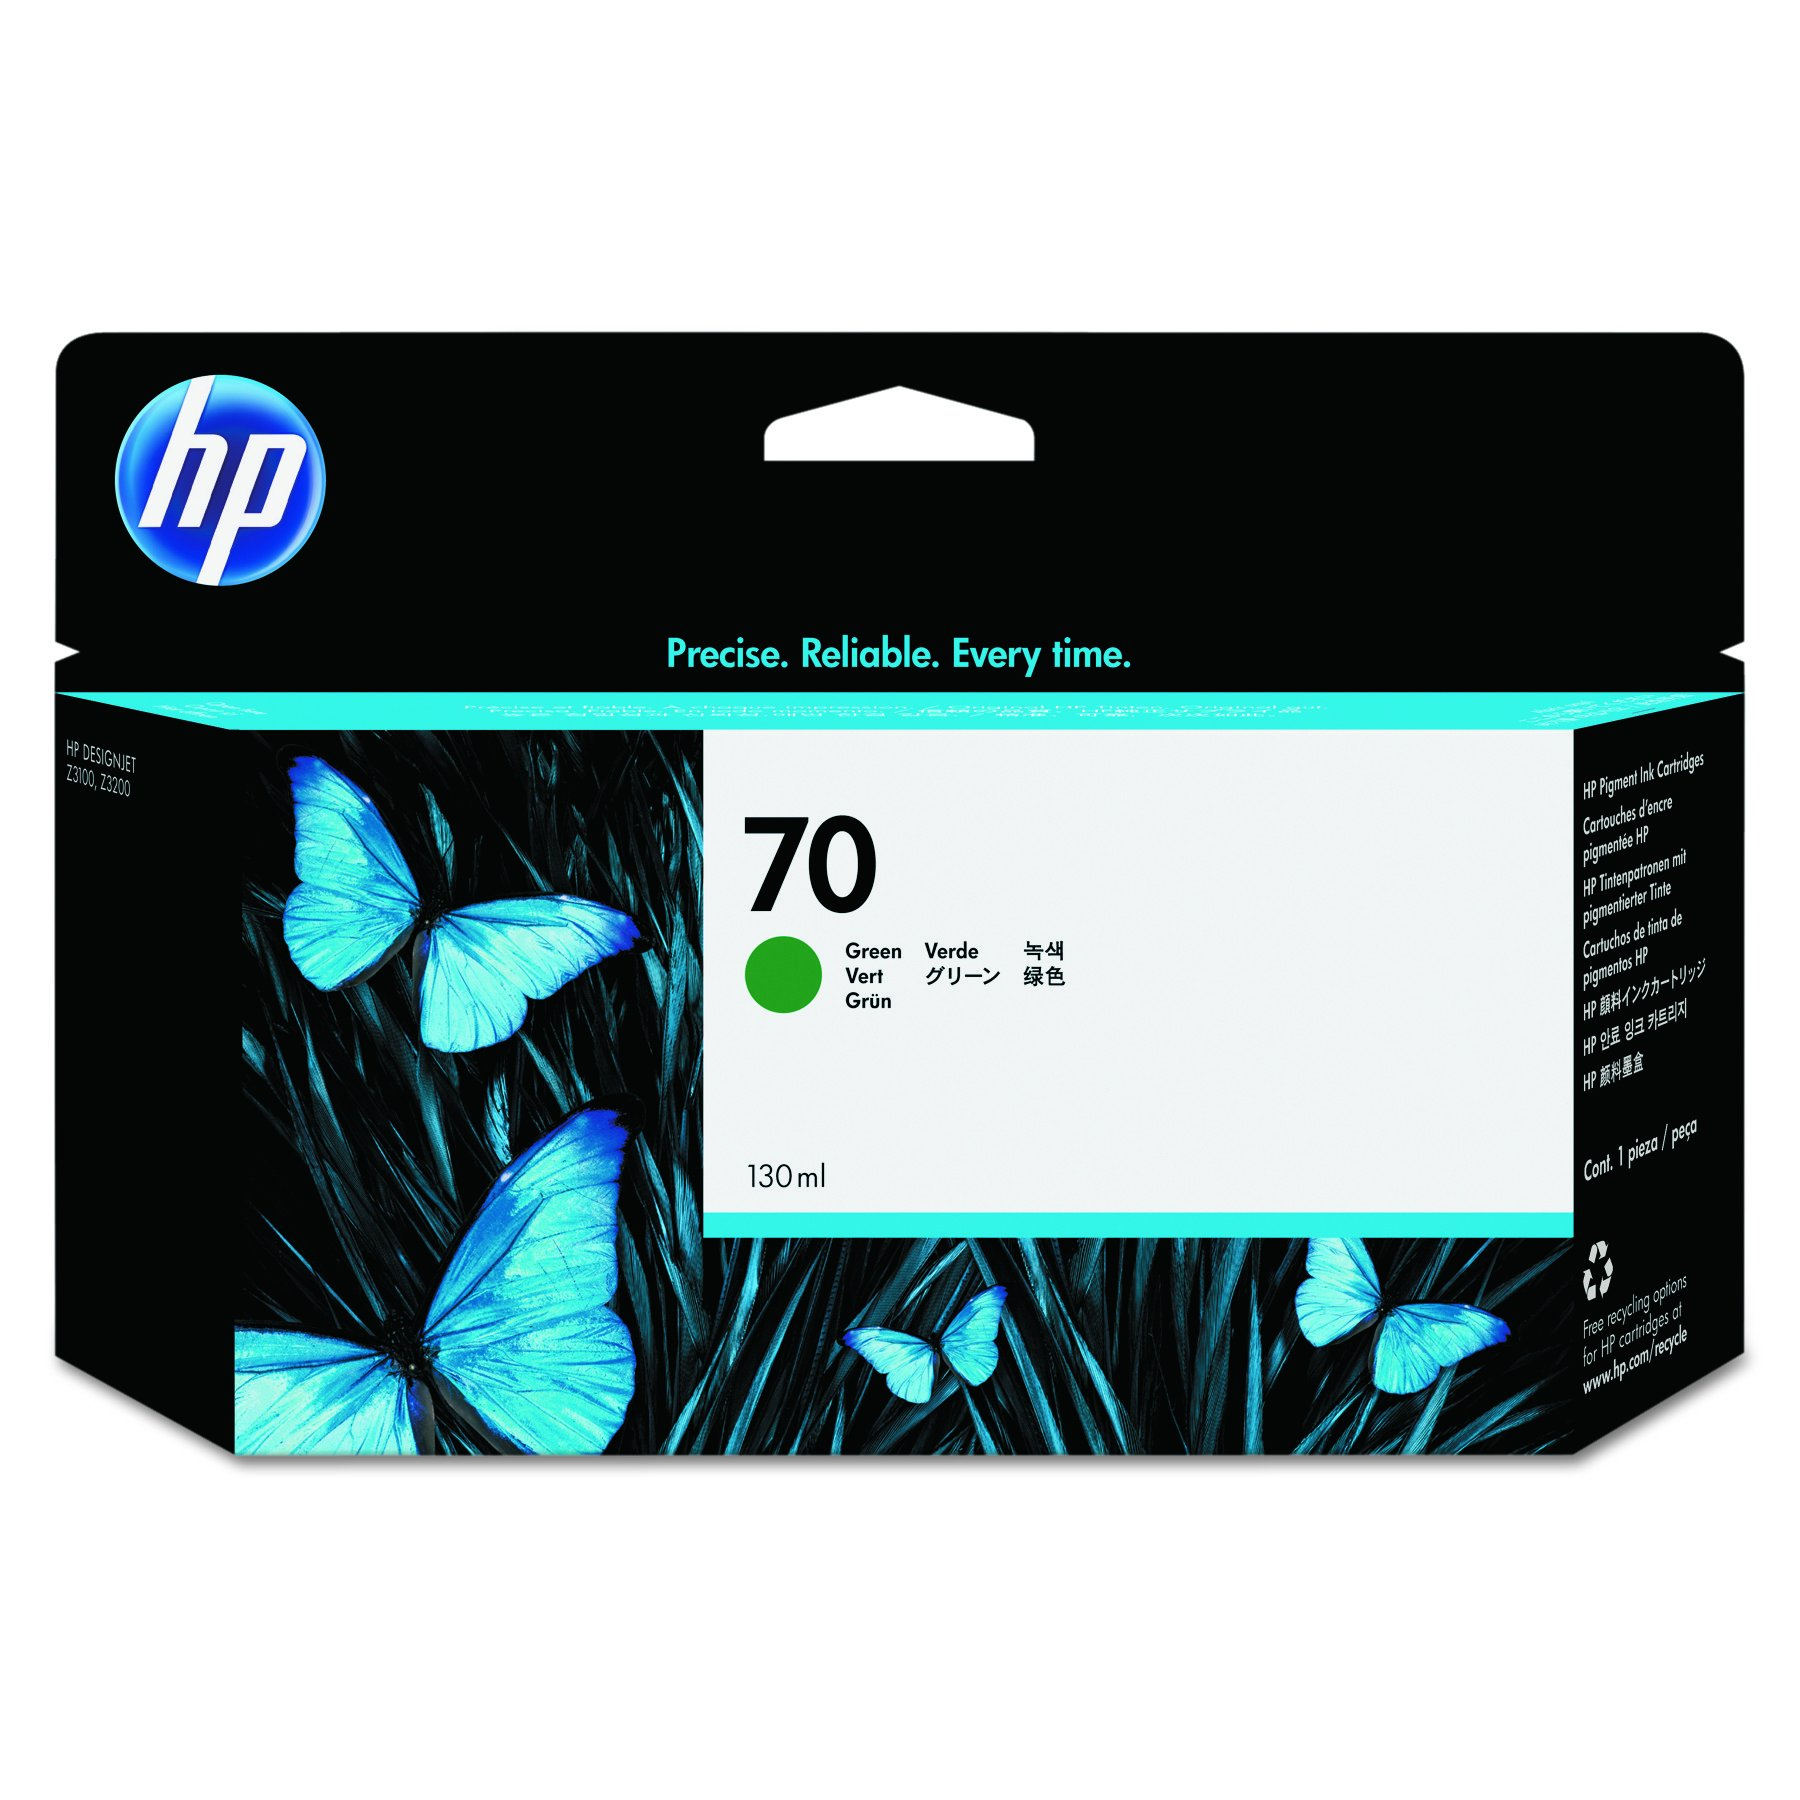 HP 70 Green C9457A 130 Ml Ink Cartridge Use In Hp Designjet Printer by HP